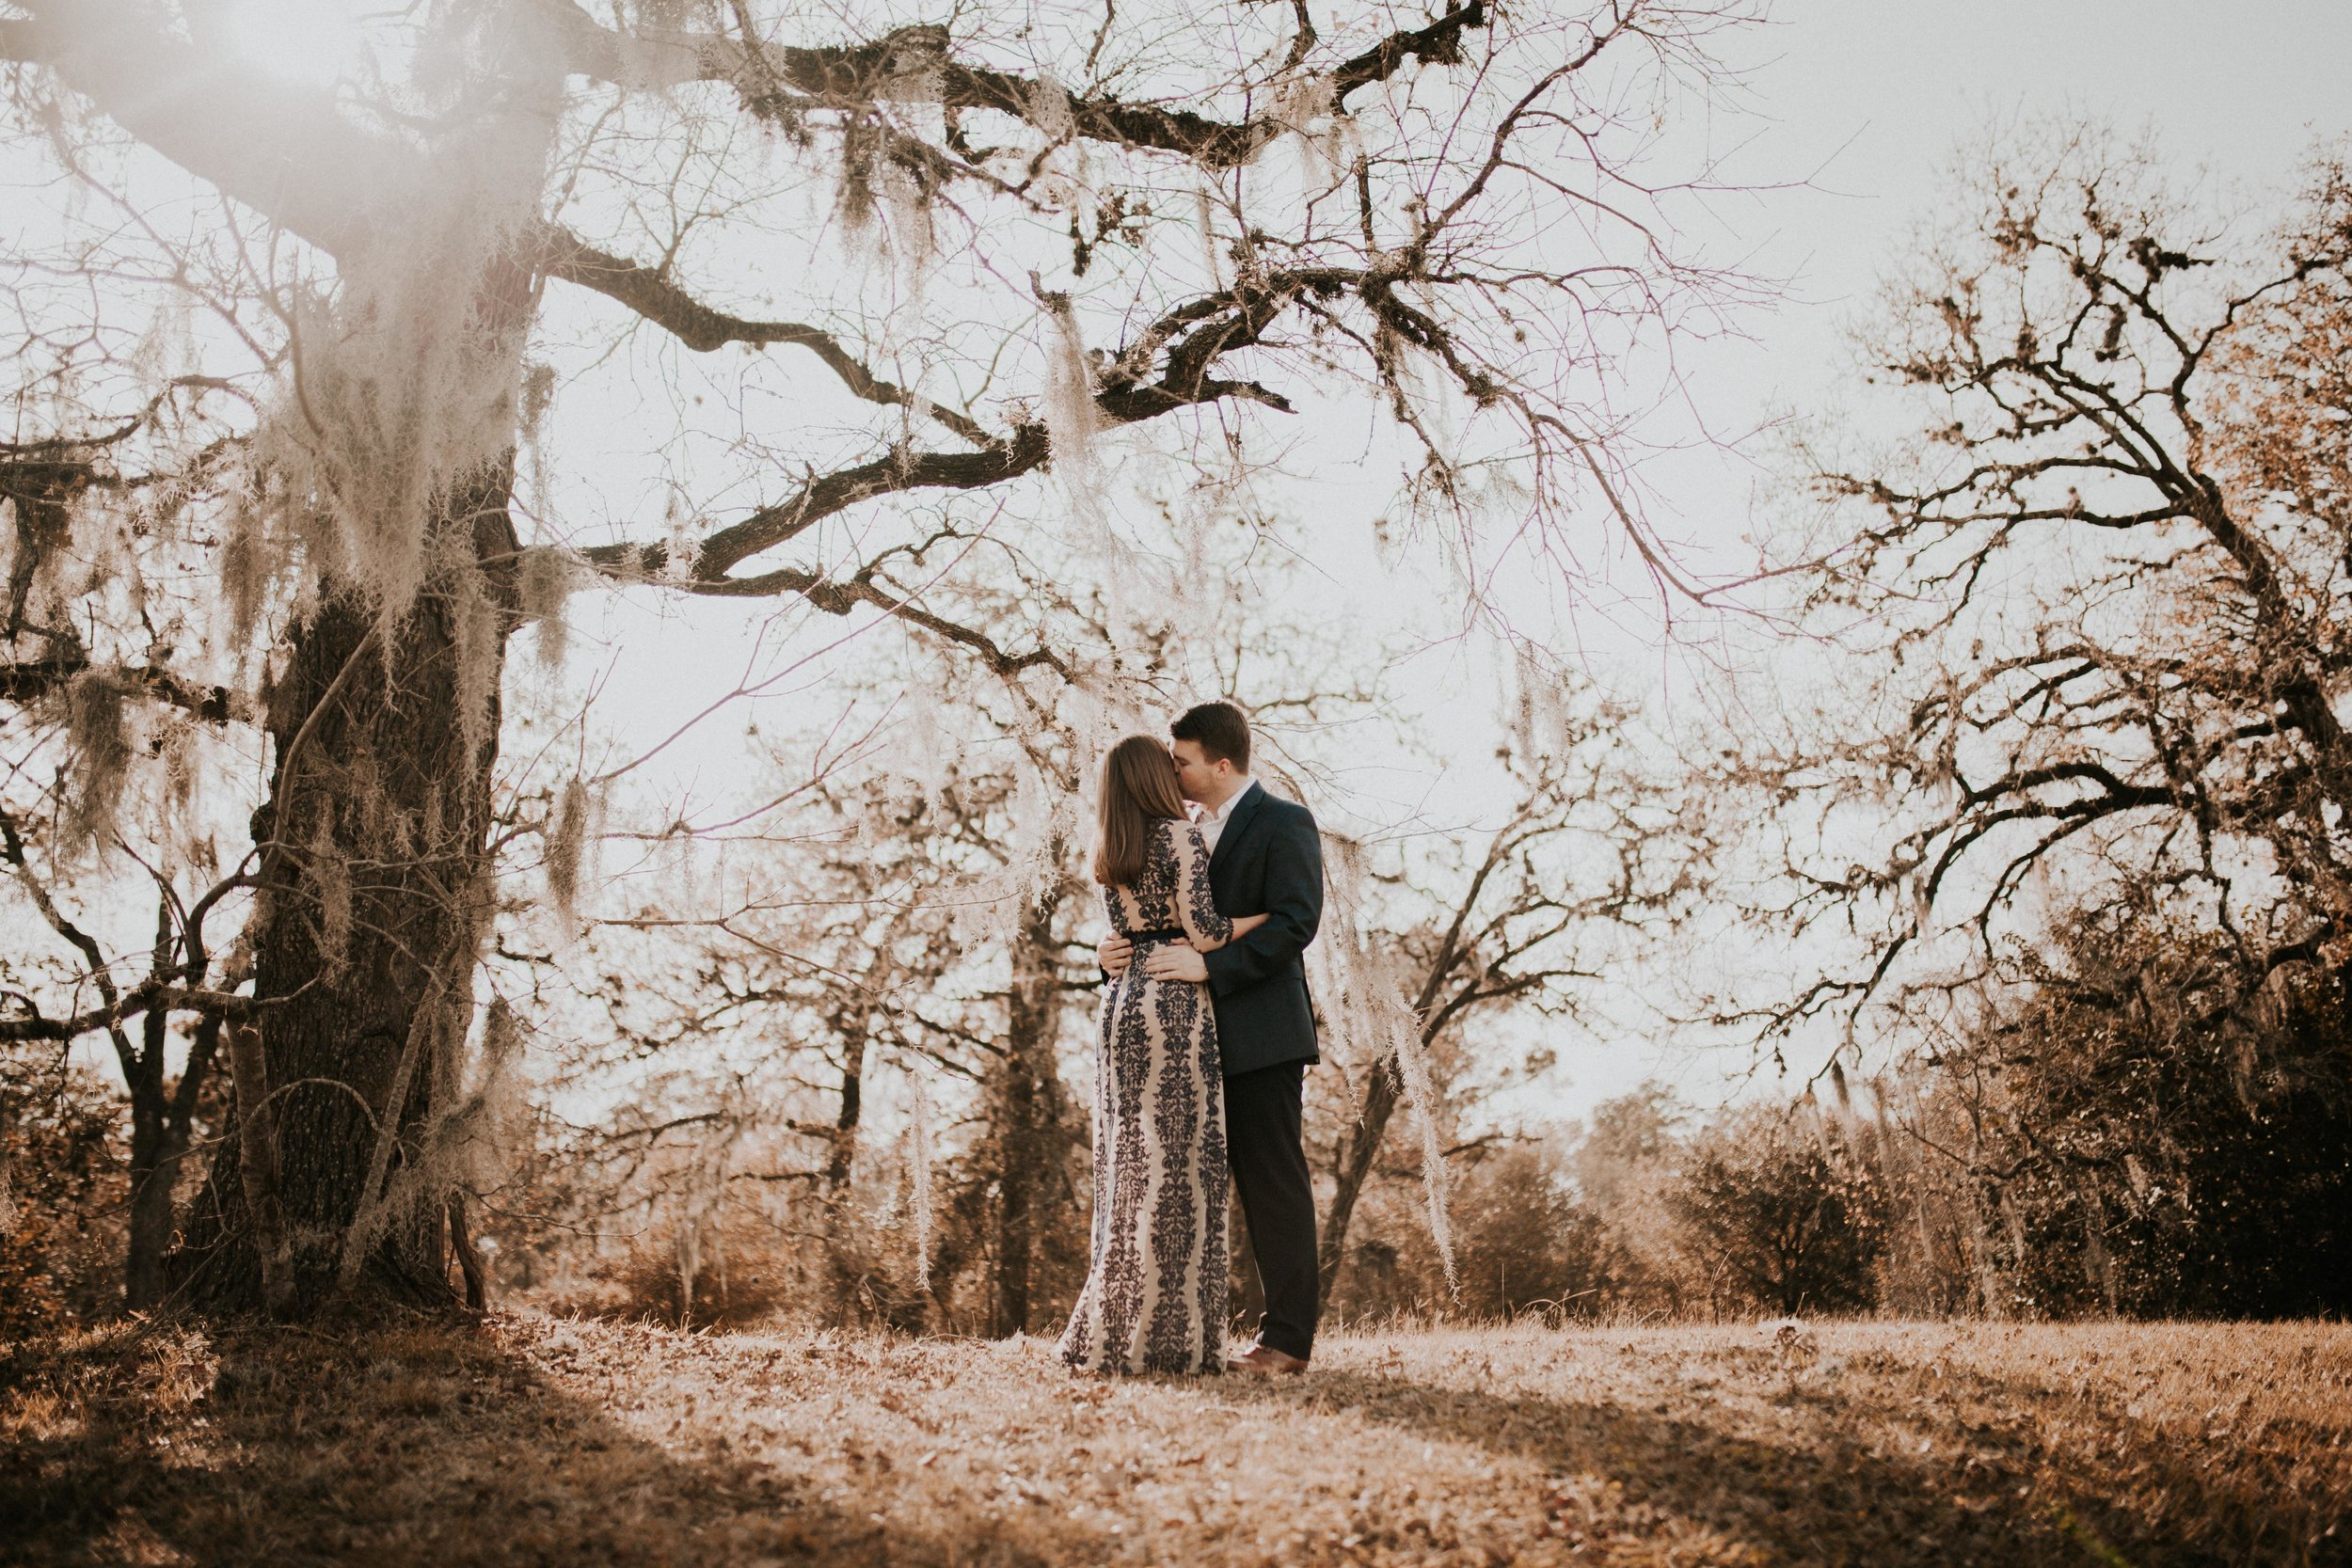 Memorial Park Engagement Session Houston Texas - Madeleine Frost-1149.jpg